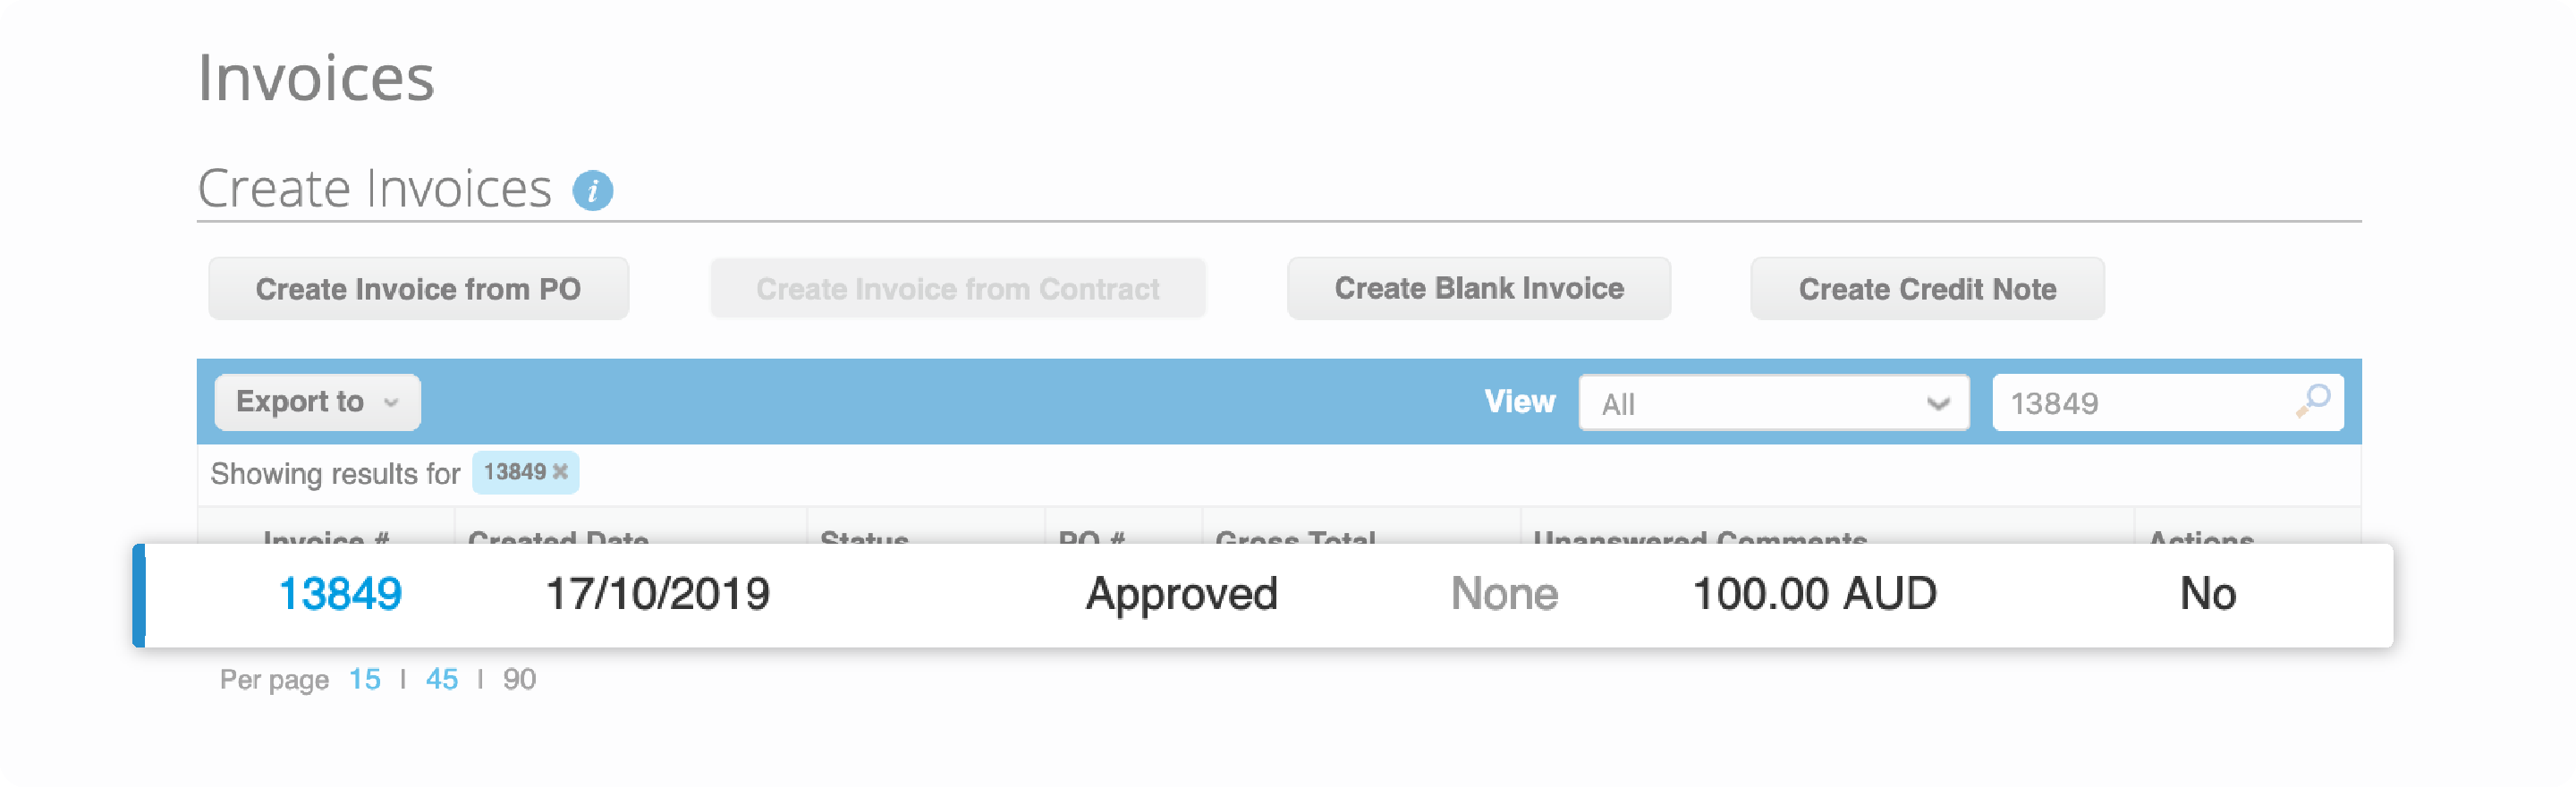 Invoice number will be displayed. Click the invoice number to check if it's already paid or not